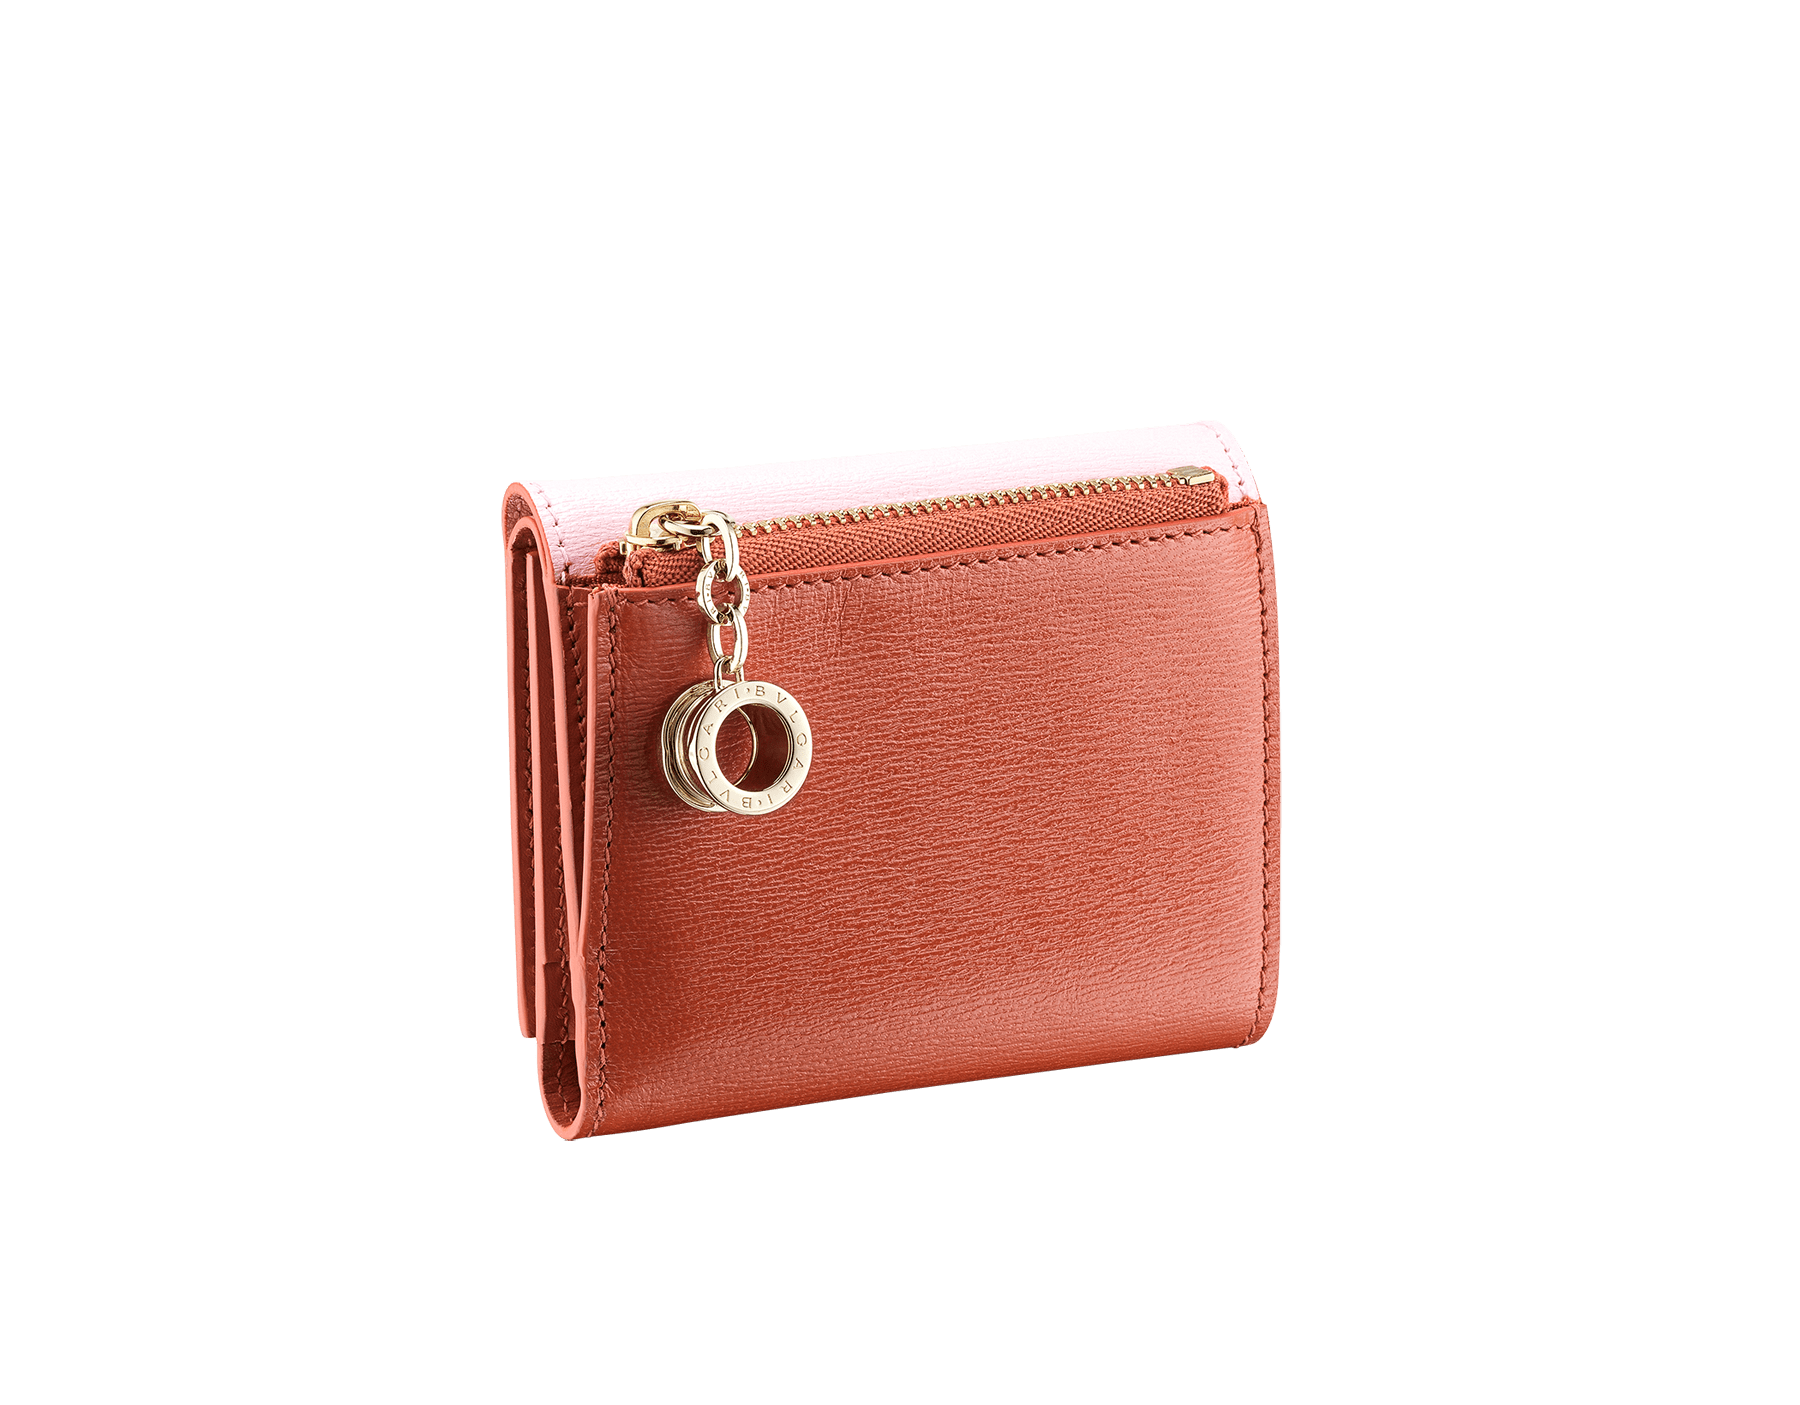 B.zero1 compact wallet in rosa di francia and imperial topaz goatskin. Iconic B.zero1 zip in light gold plated brass and two press stud closures. 289085 image 3